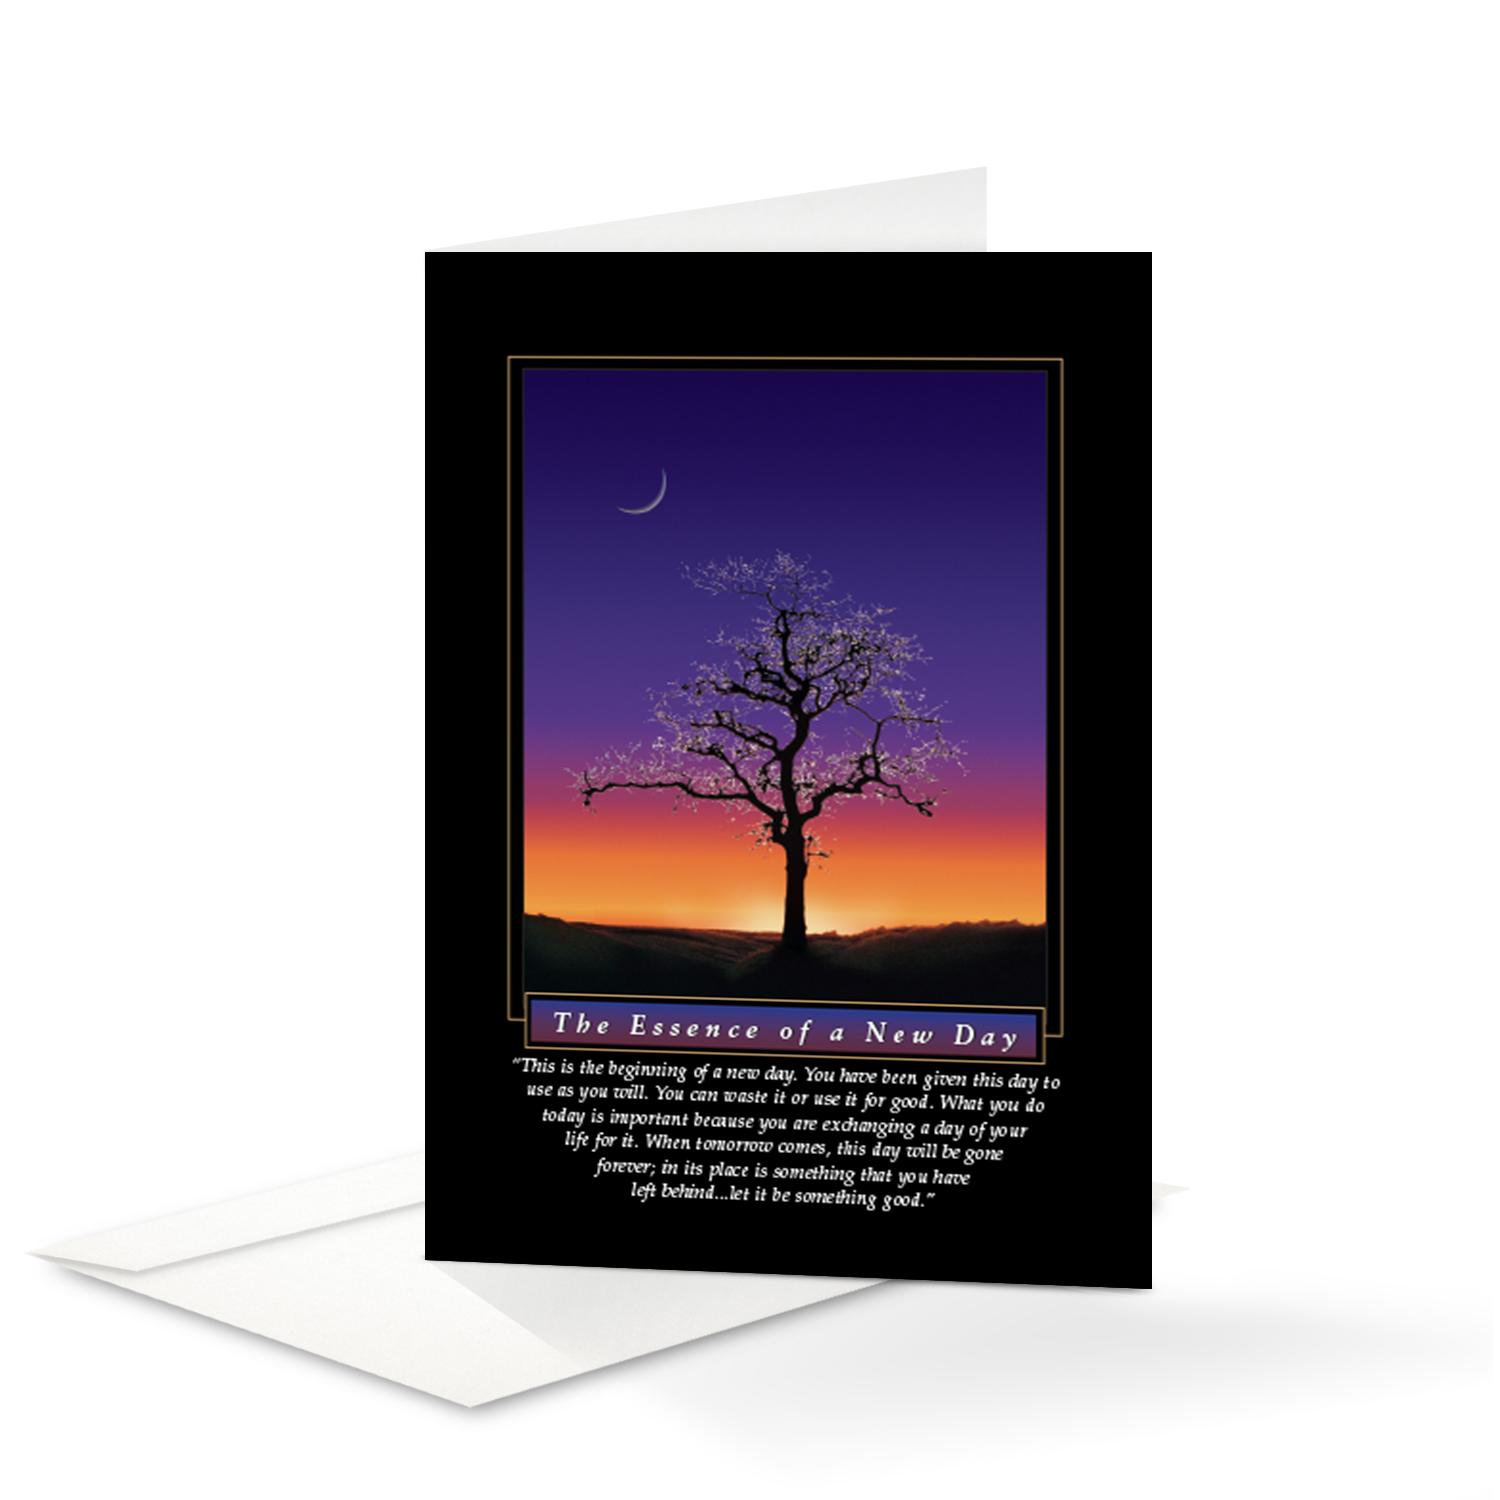 Essence of new day 25 pack greeting cards successories essence of new day 25 pack greeting cards kristyandbryce Gallery